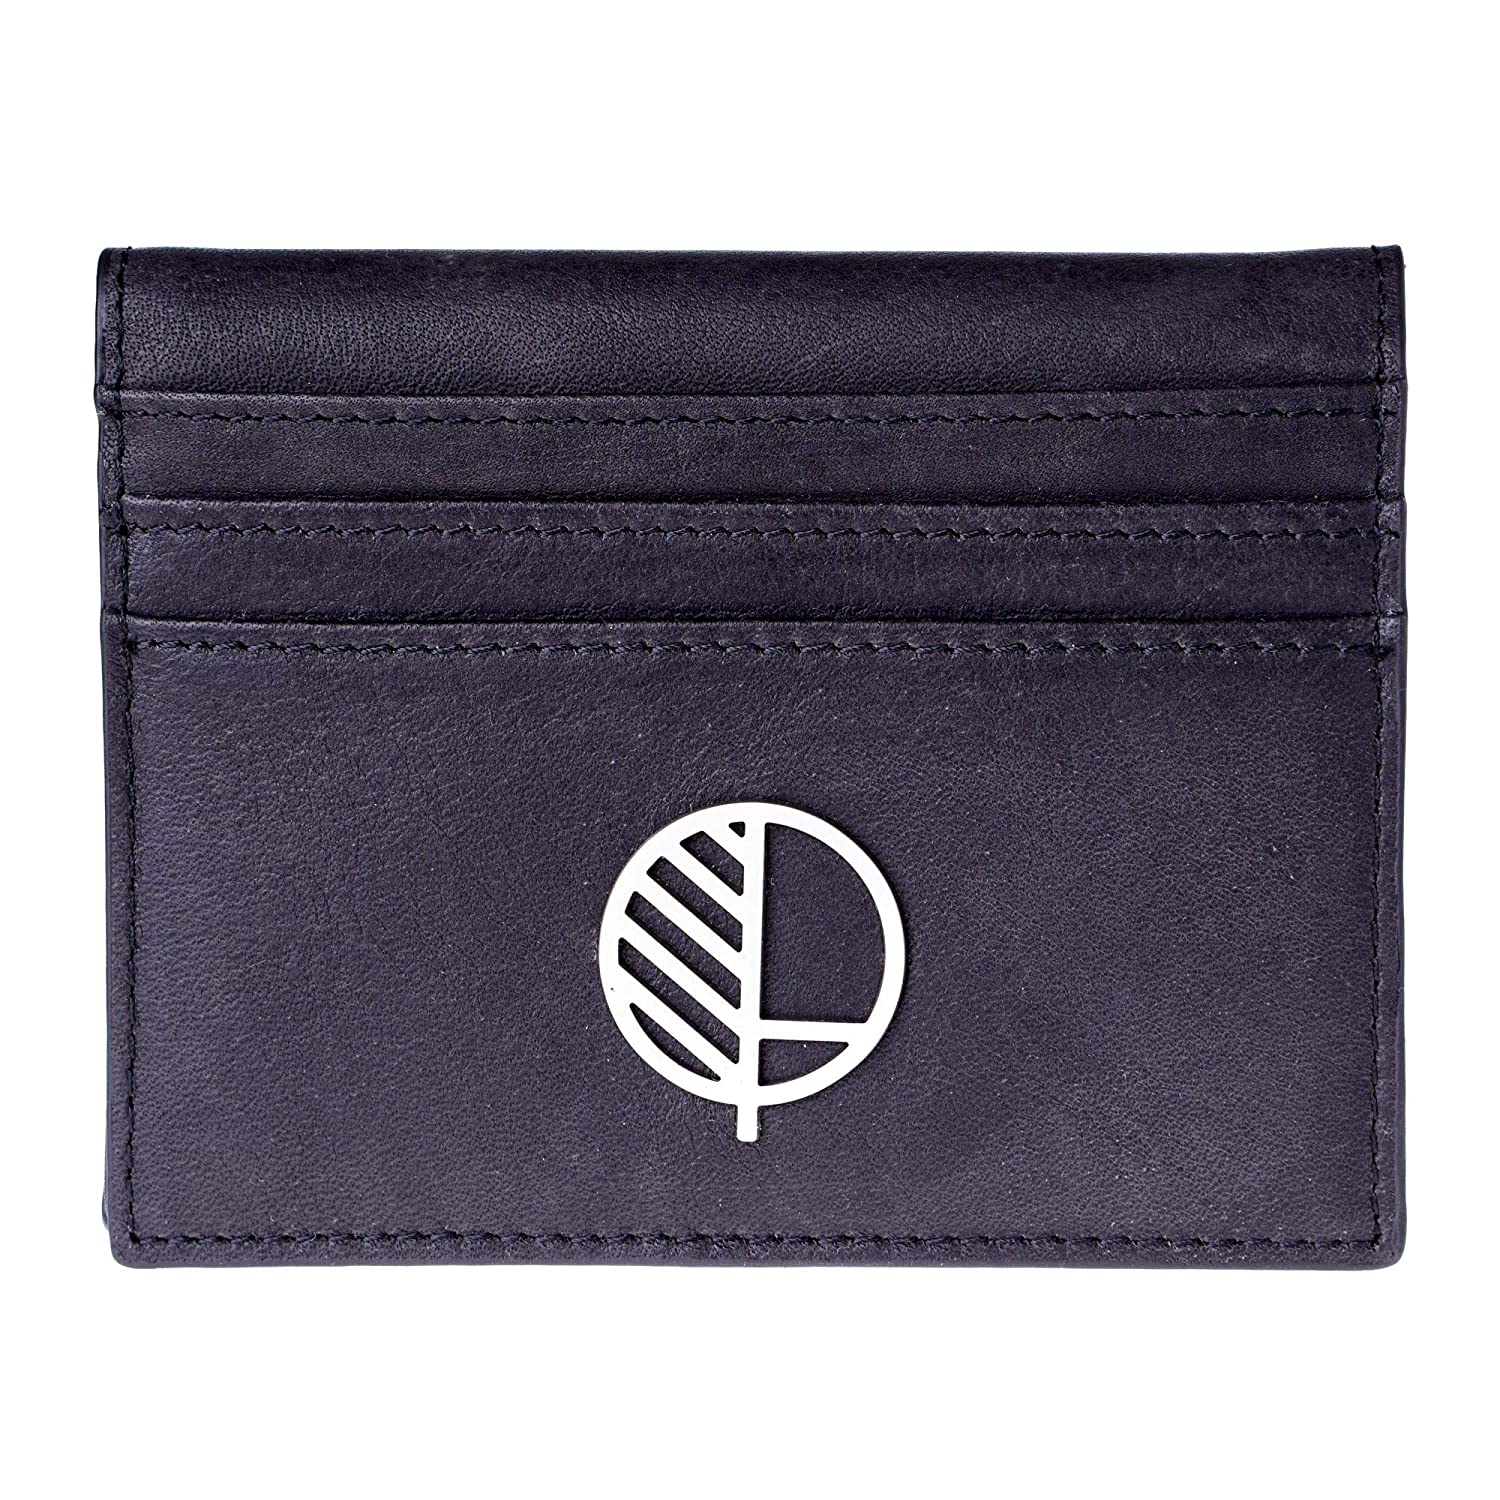 Compact Leather Wallet for Men ID and 9 Card Holders Premium English Leather